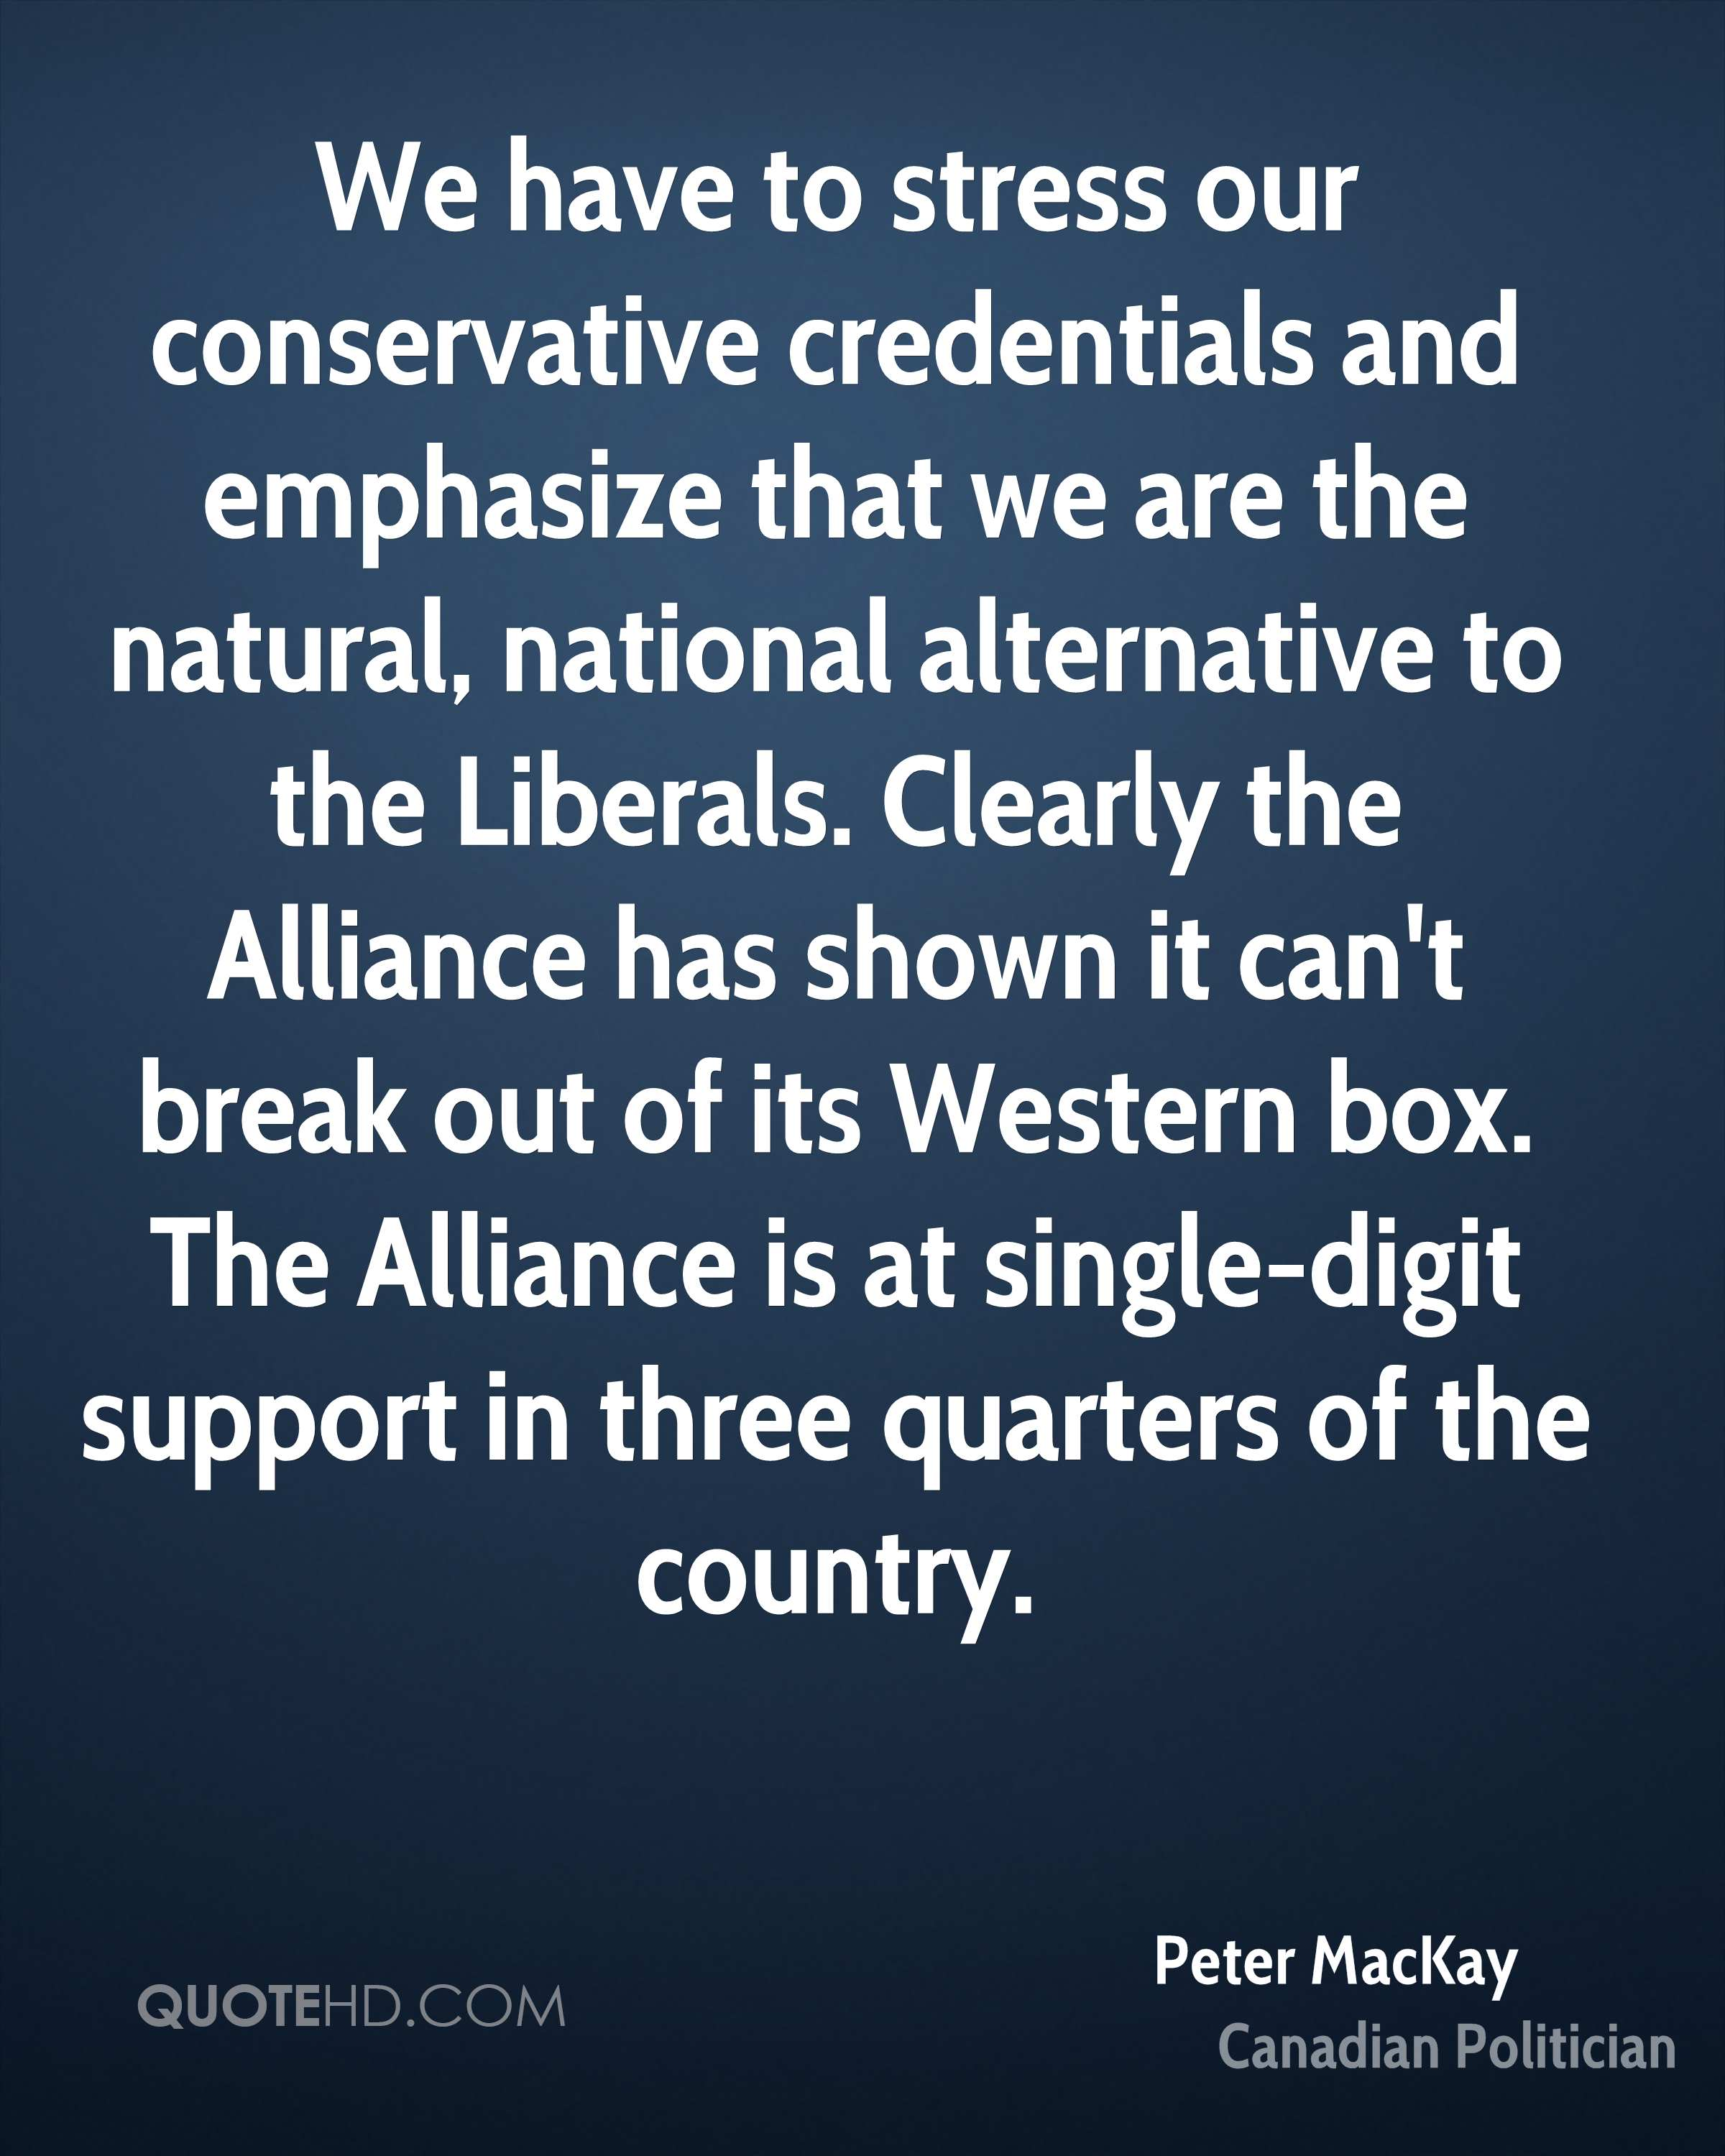 We have to stress our conservative credentials and emphasize that we are the natural, national alternative to the Liberals. Clearly the Alliance has shown it can't break out of its Western box. The Alliance is at single-digit support in three quarters of the country.